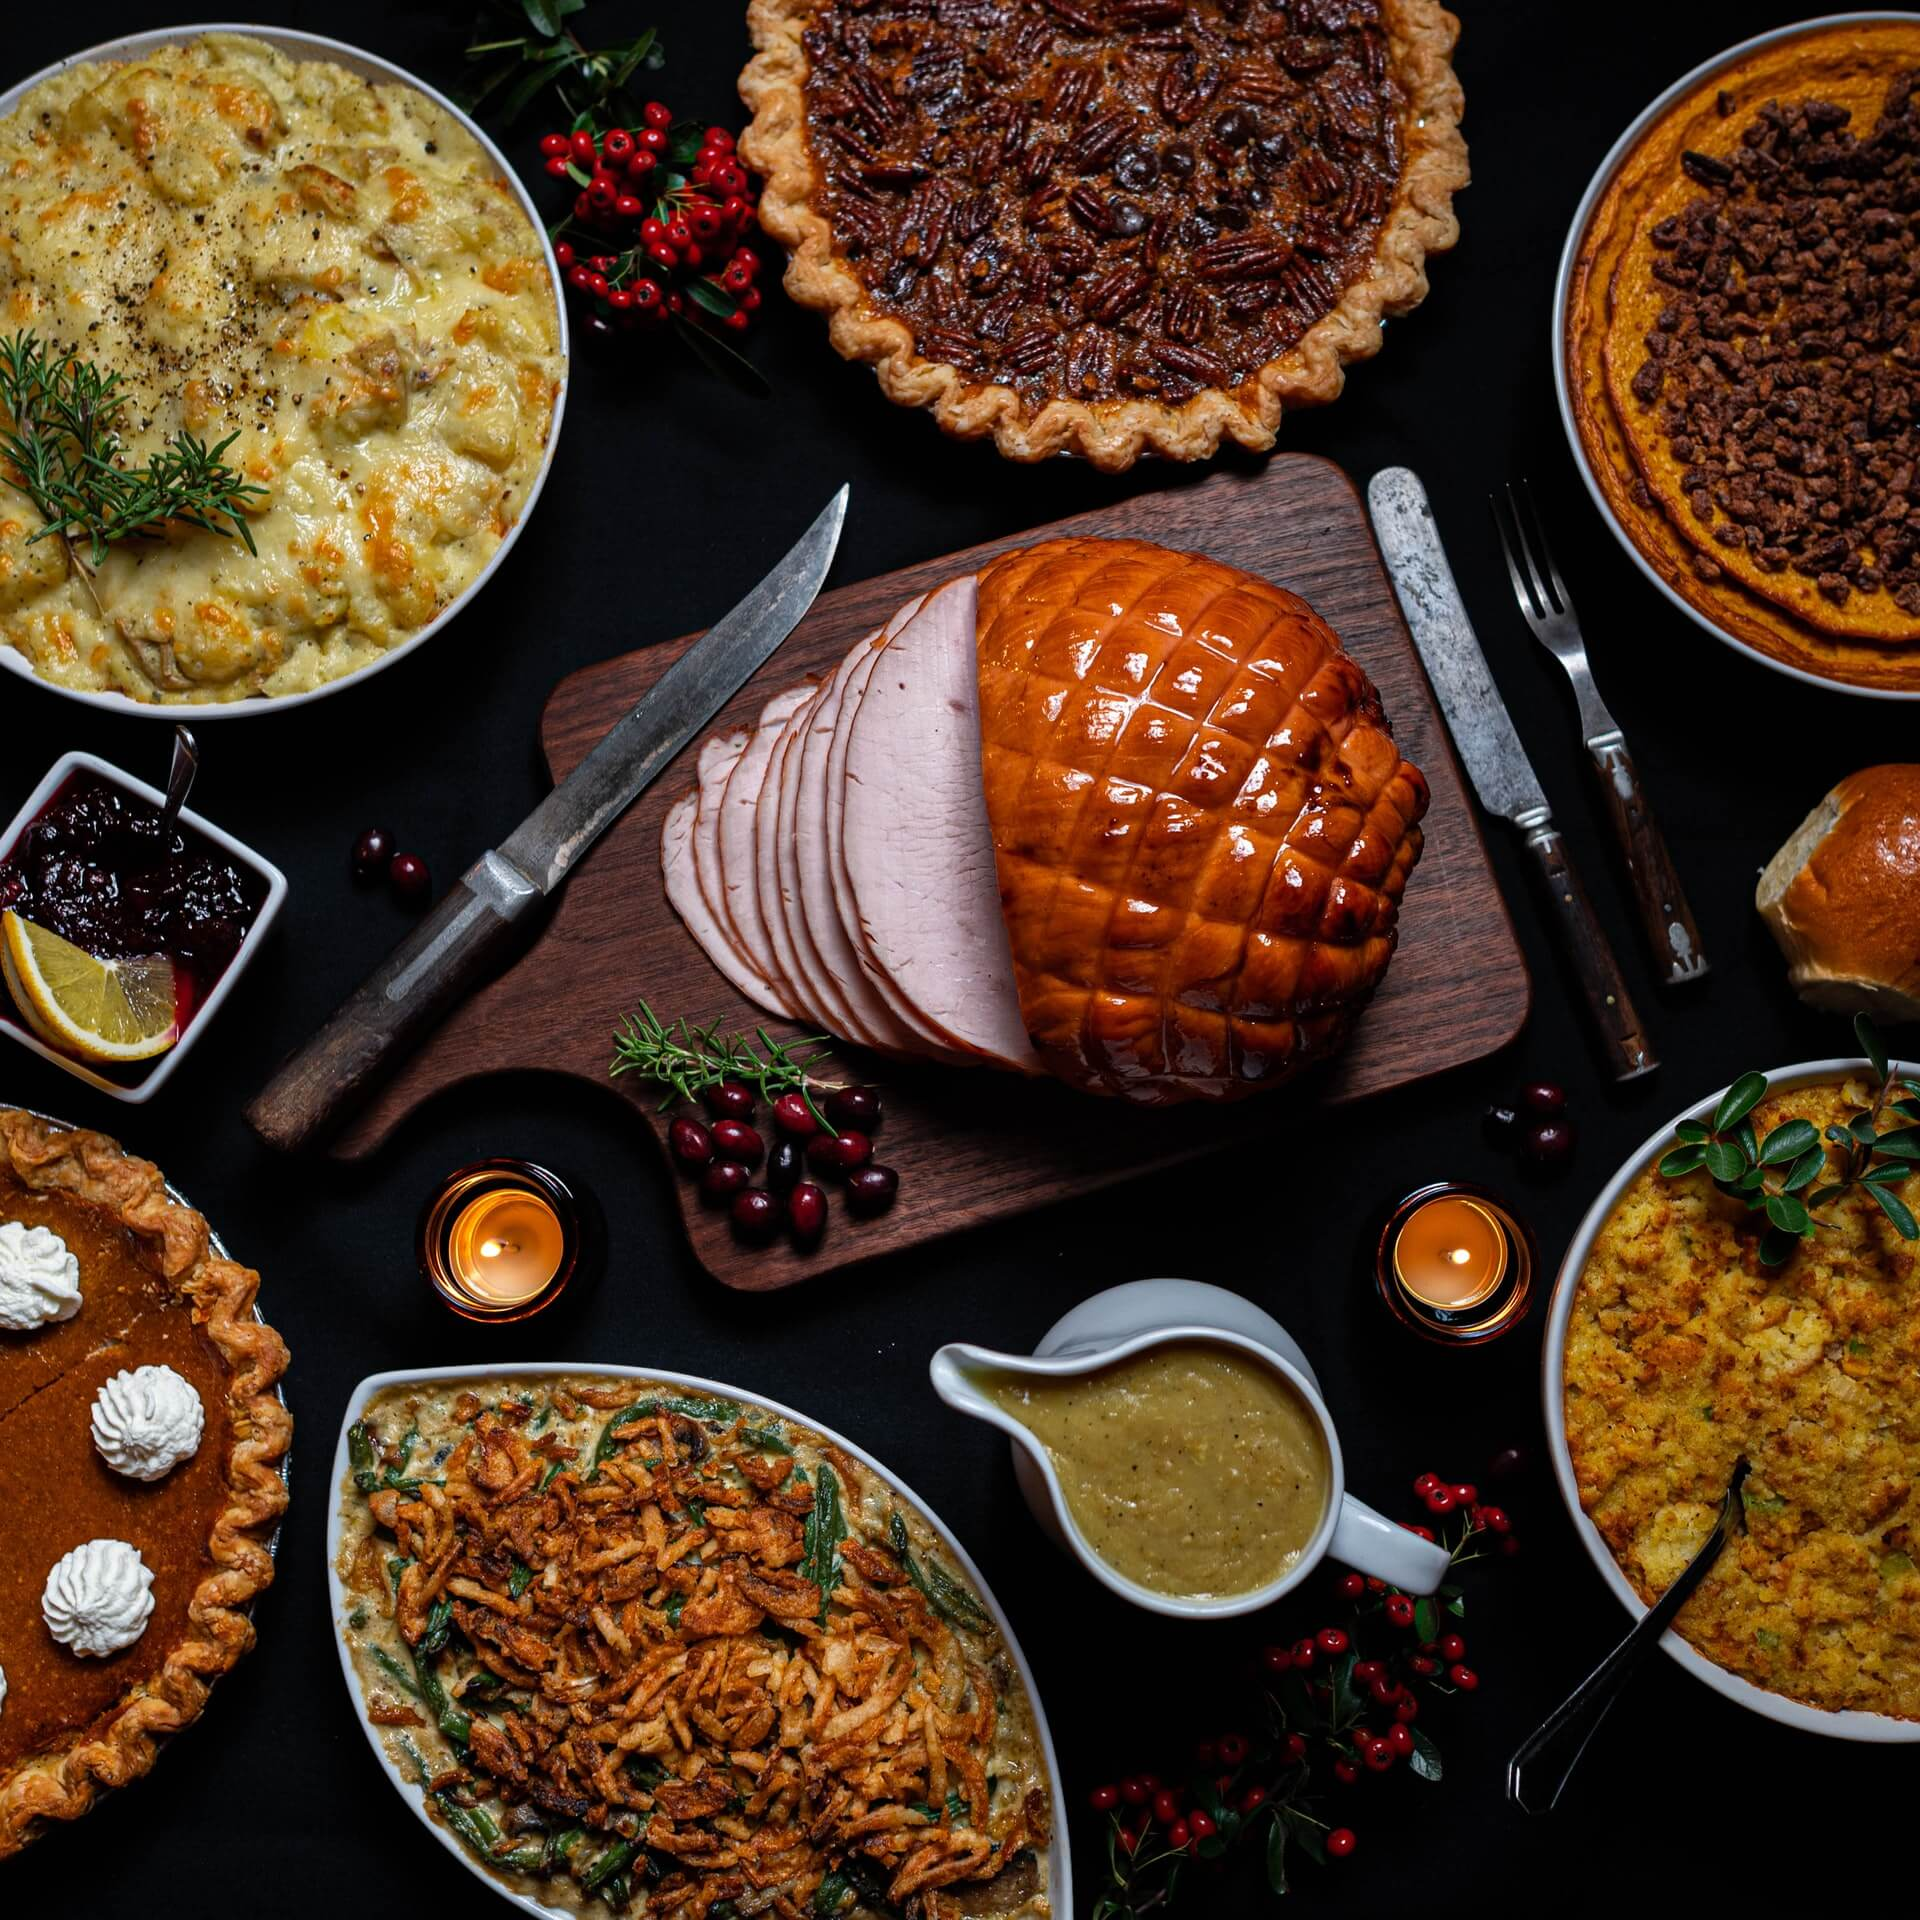 Holiday cooking can lead to an increase in fatbergs and sewer overflows.